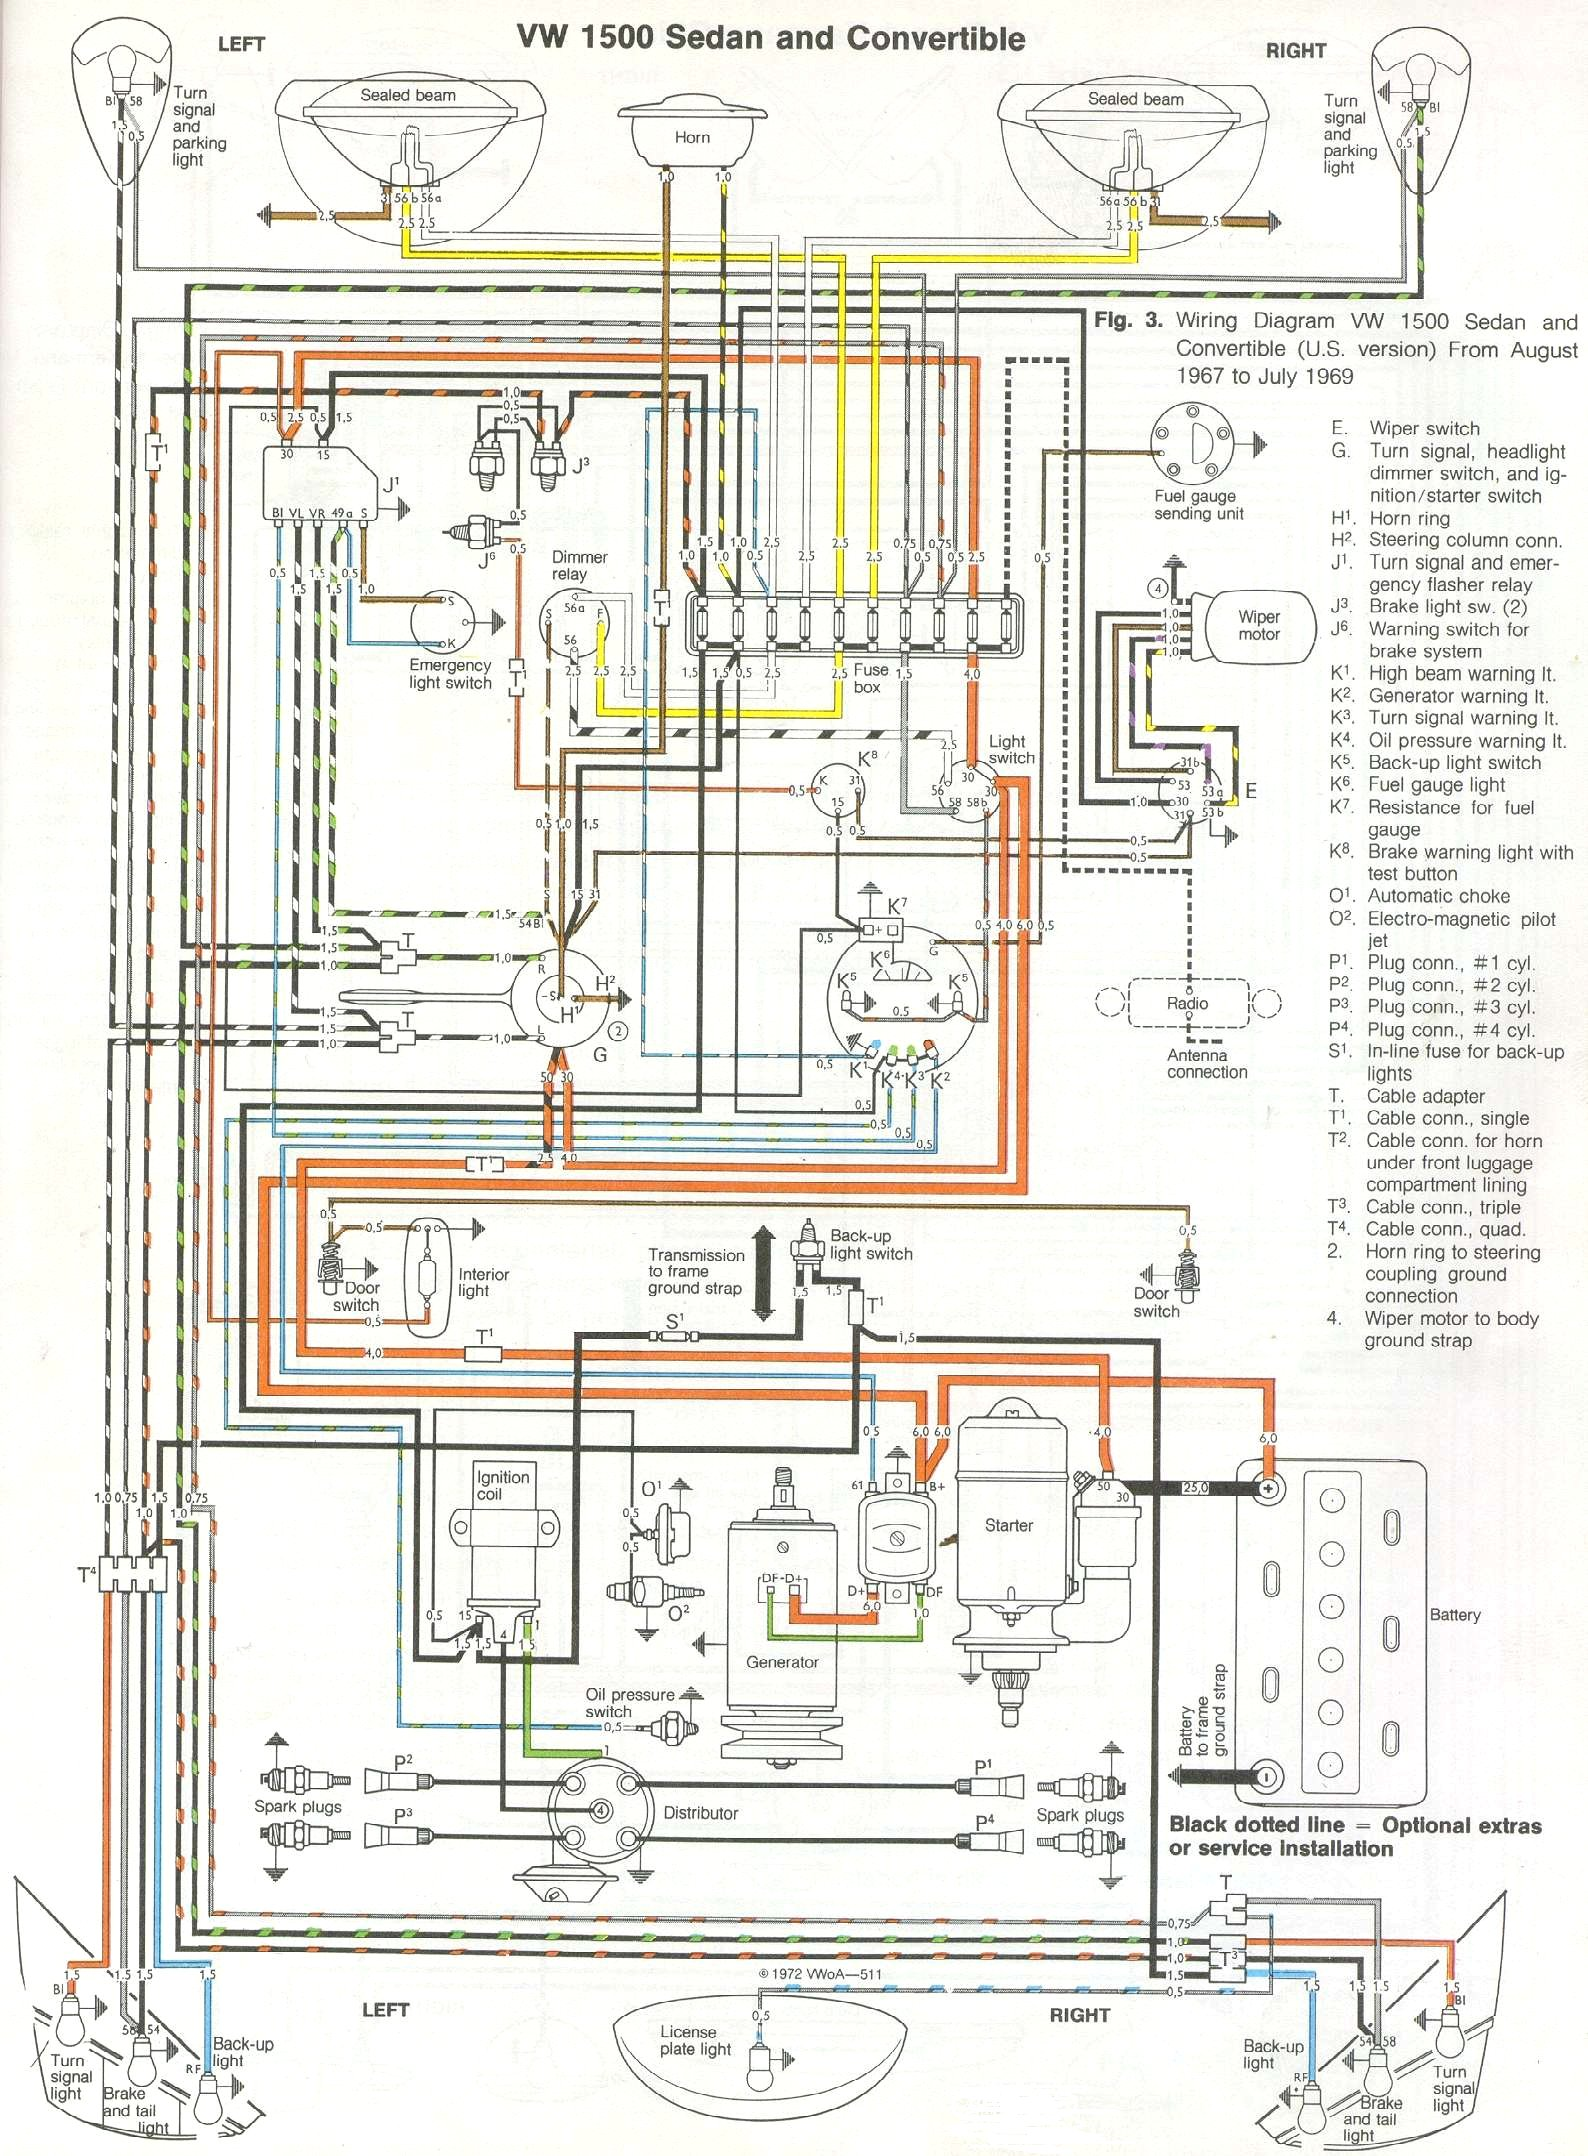 bug_6869 1968 69 beetle wiring diagram (usa) thegoldenbug com 74 VW Beetle Wiring Diagram at crackthecode.co